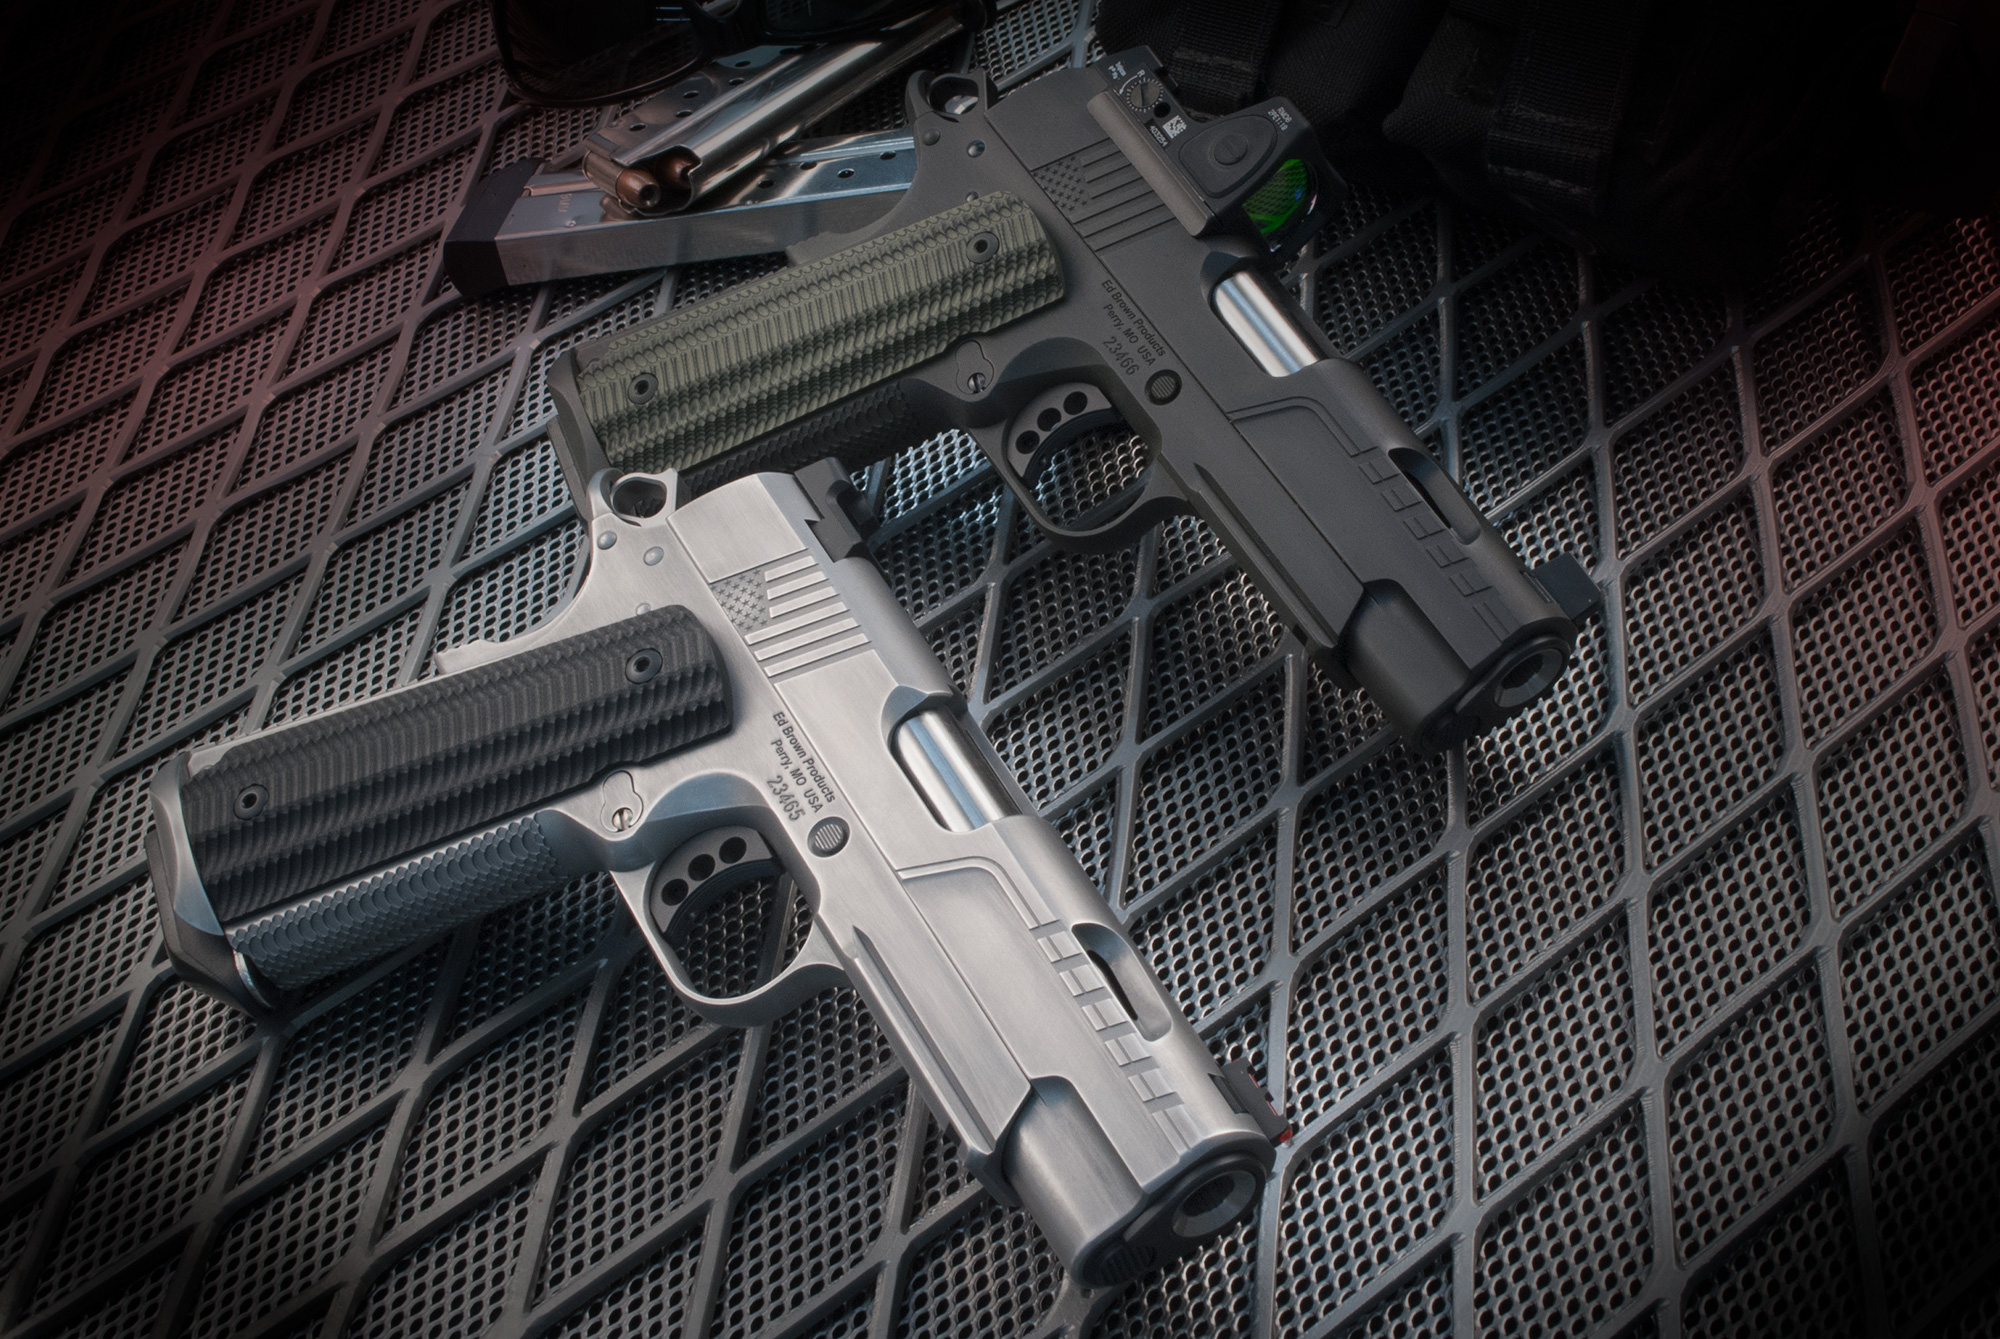 FX1 stainless and dirty olive 1911